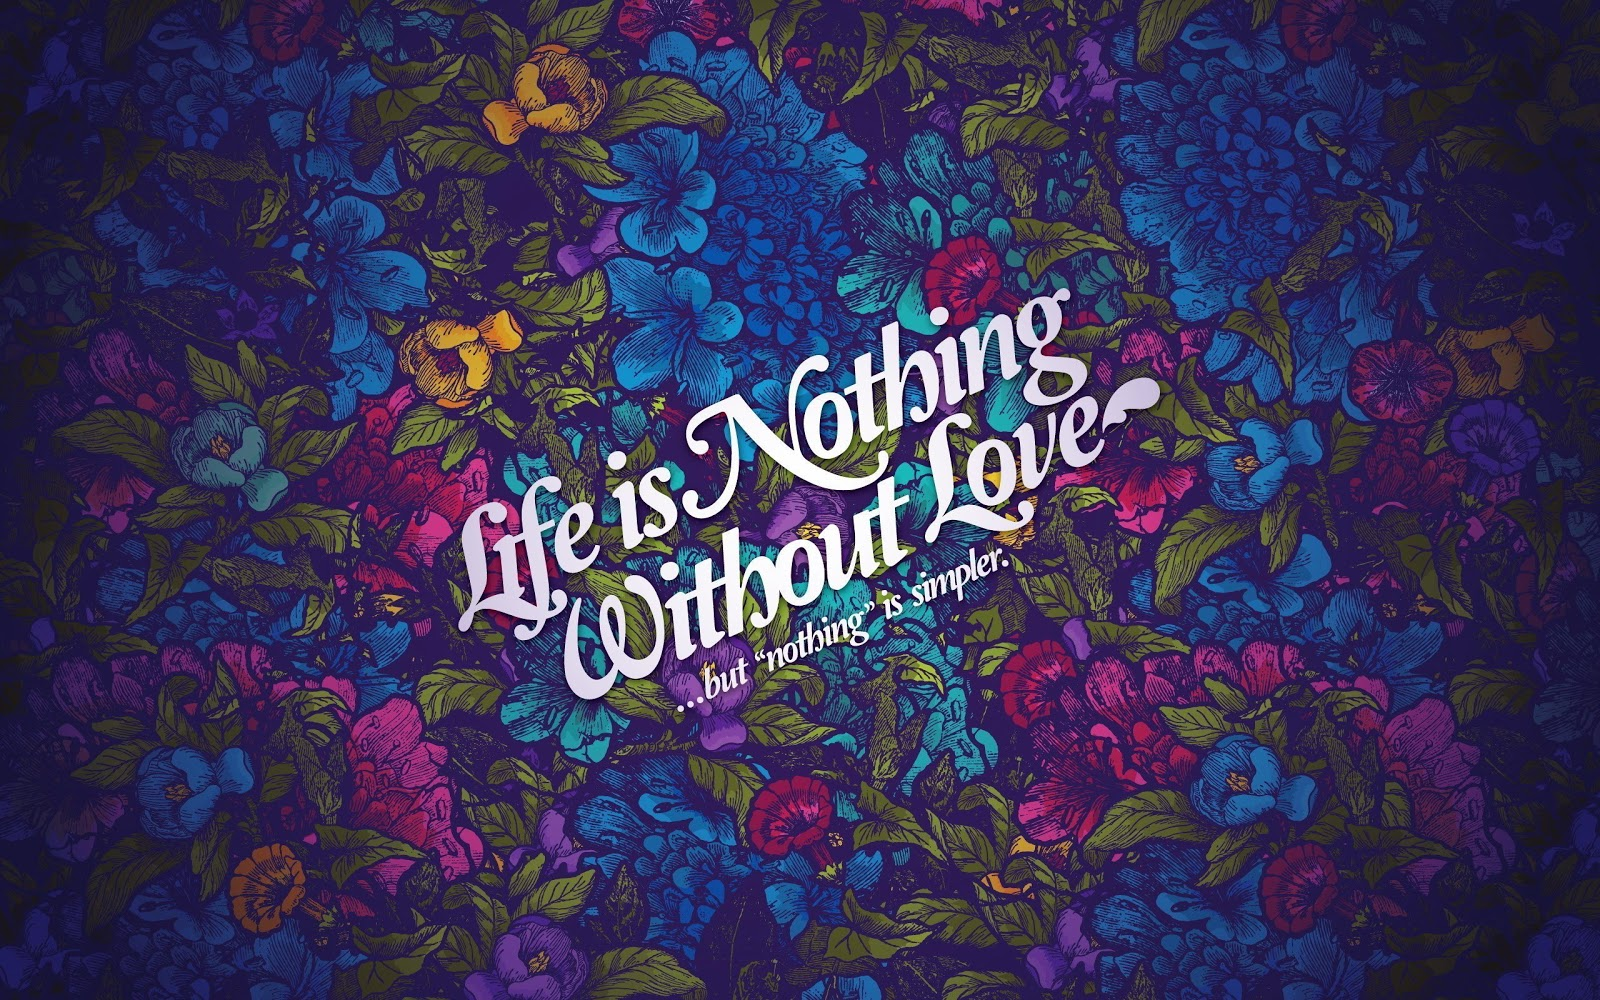 Love HD Wallpapers - Life Nothing Without Love